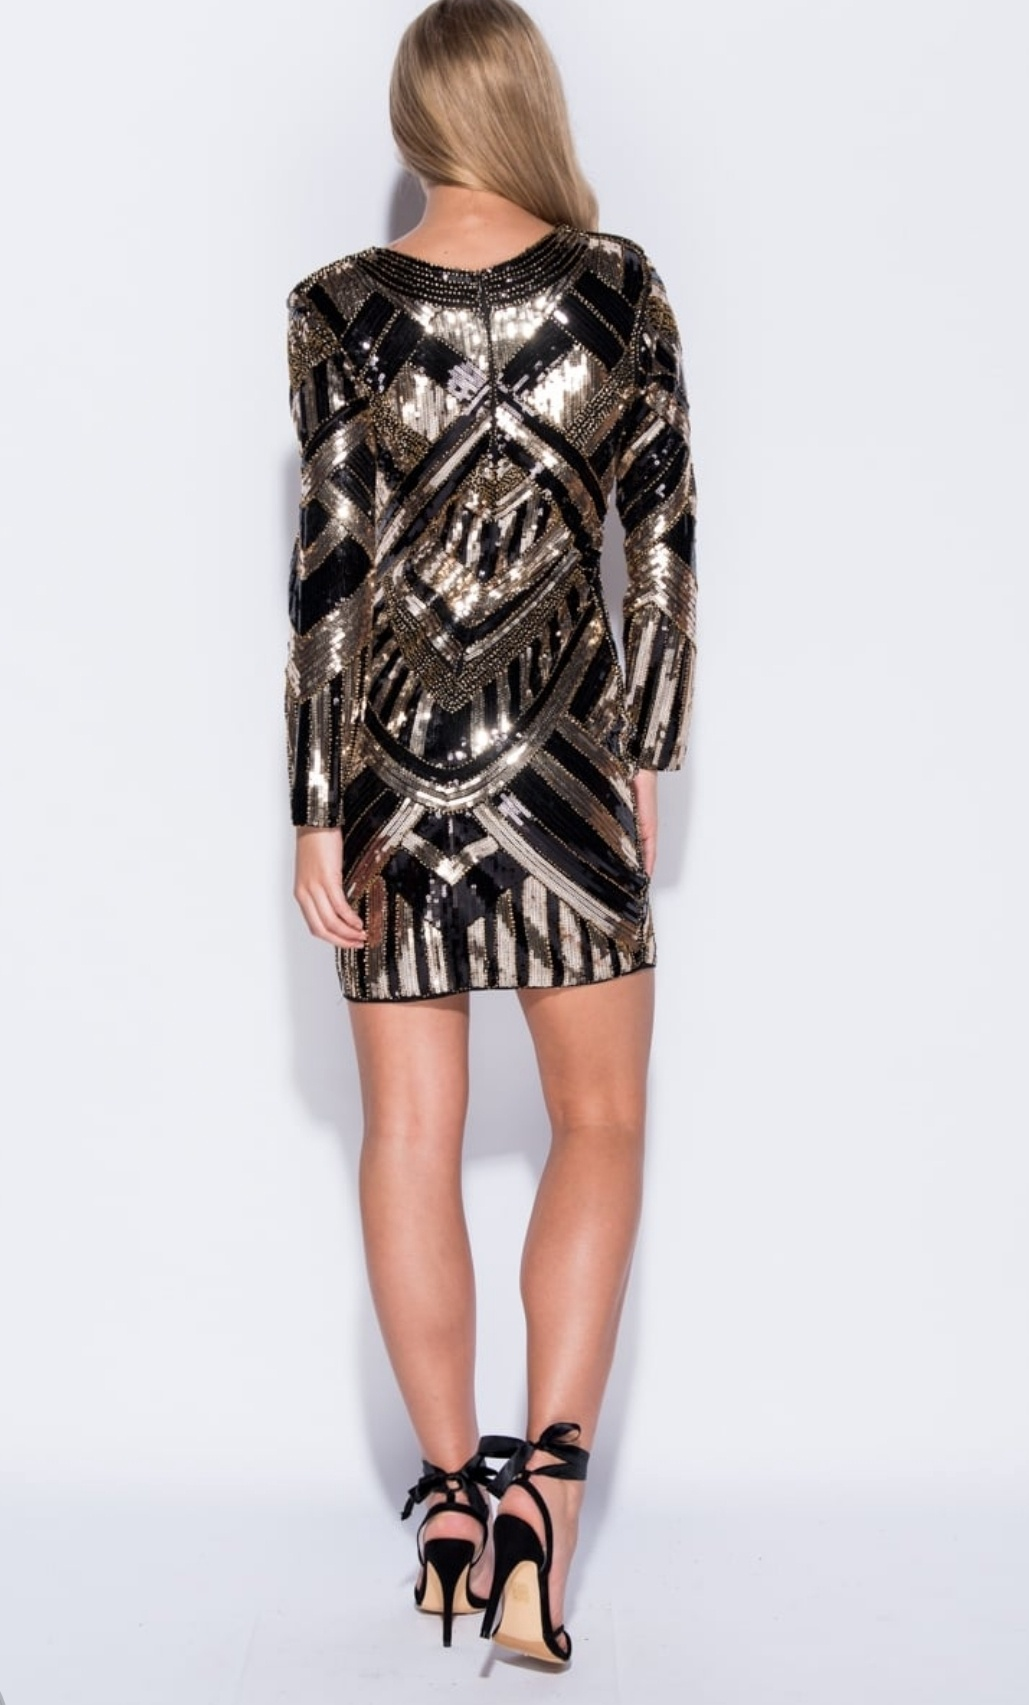 510b3d717e Short Dress Bodycon - Black and Gold Sequined Long Sleeves - Stevie ...